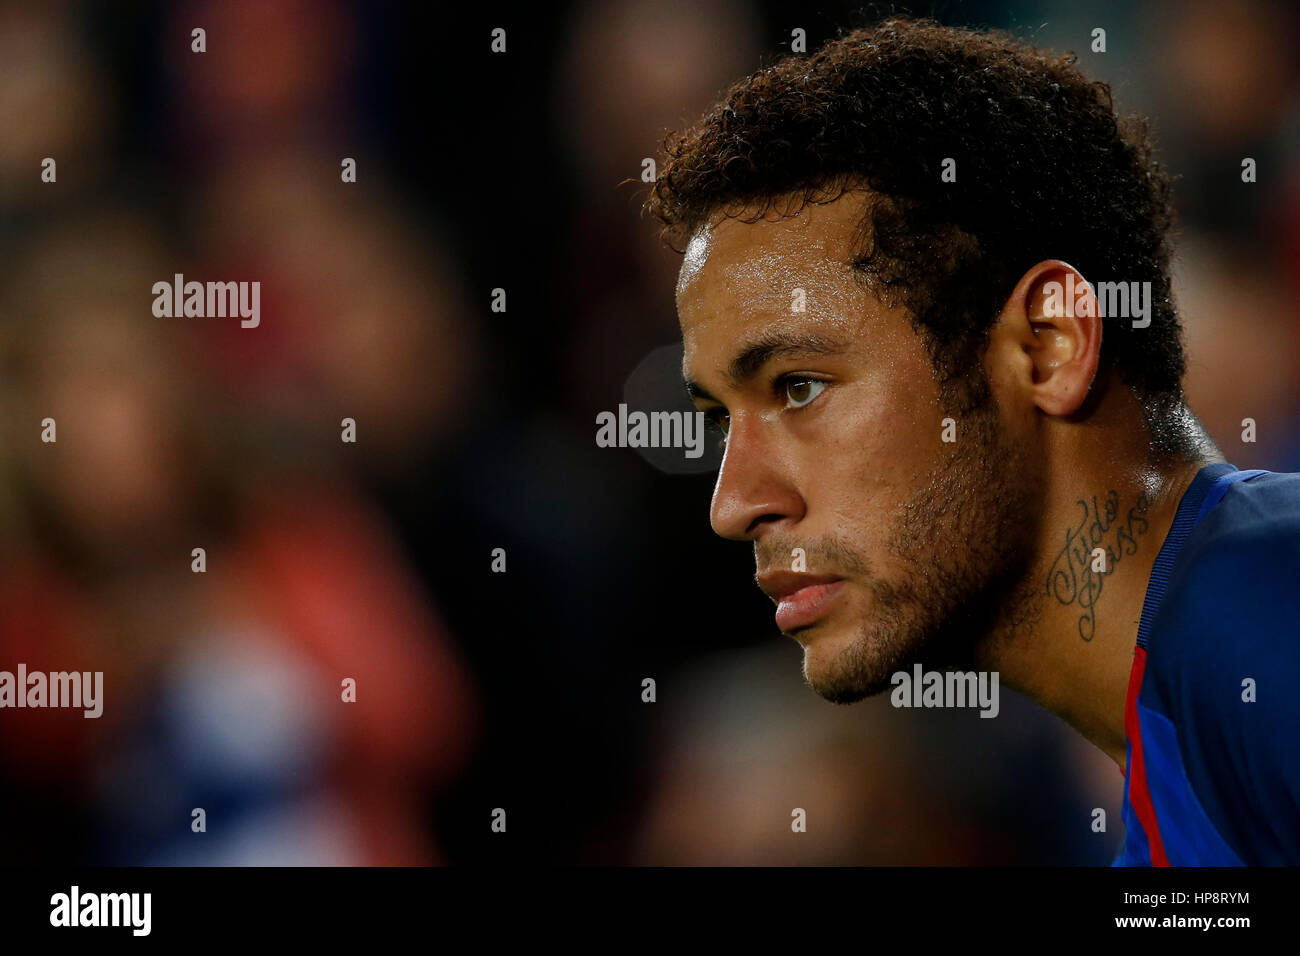 Barcelona, Spain. 19th Feb, 2017. Barcelona's Neymar looks on during the Spanish first division soccer match - Stock Image